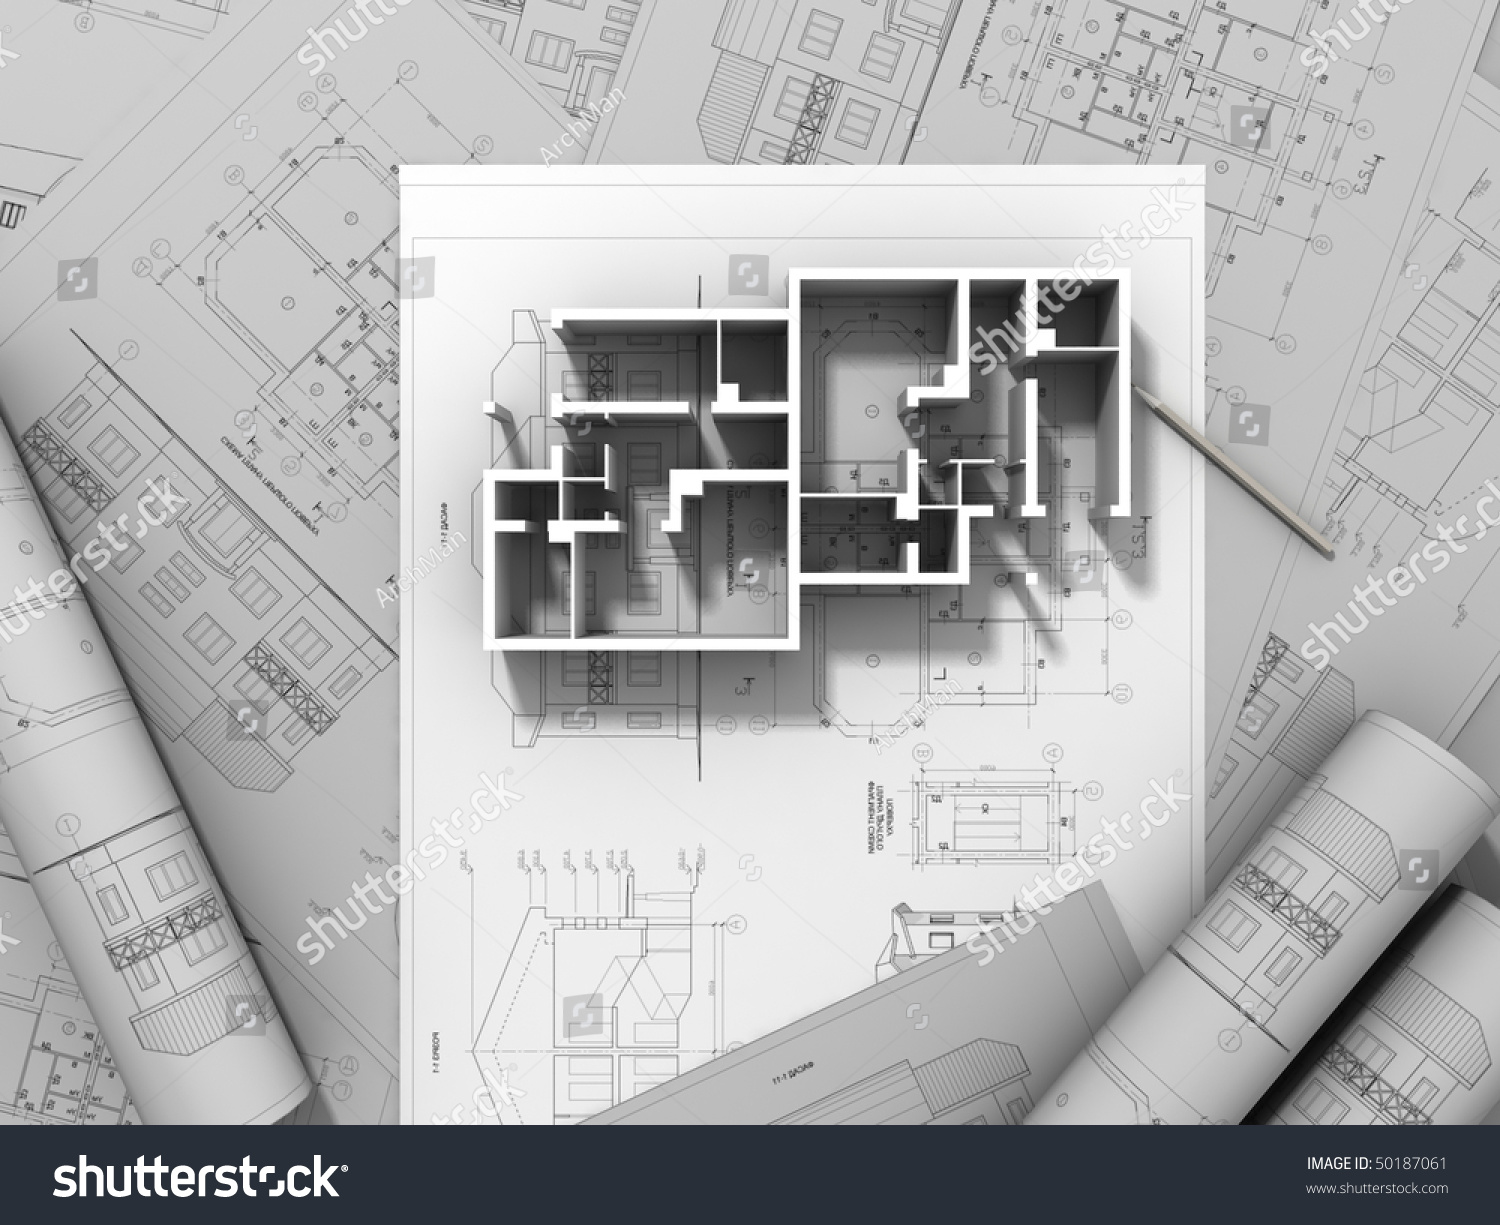 3d plan drawing stock photo 50187061 shutterstock for 3d plan drawing